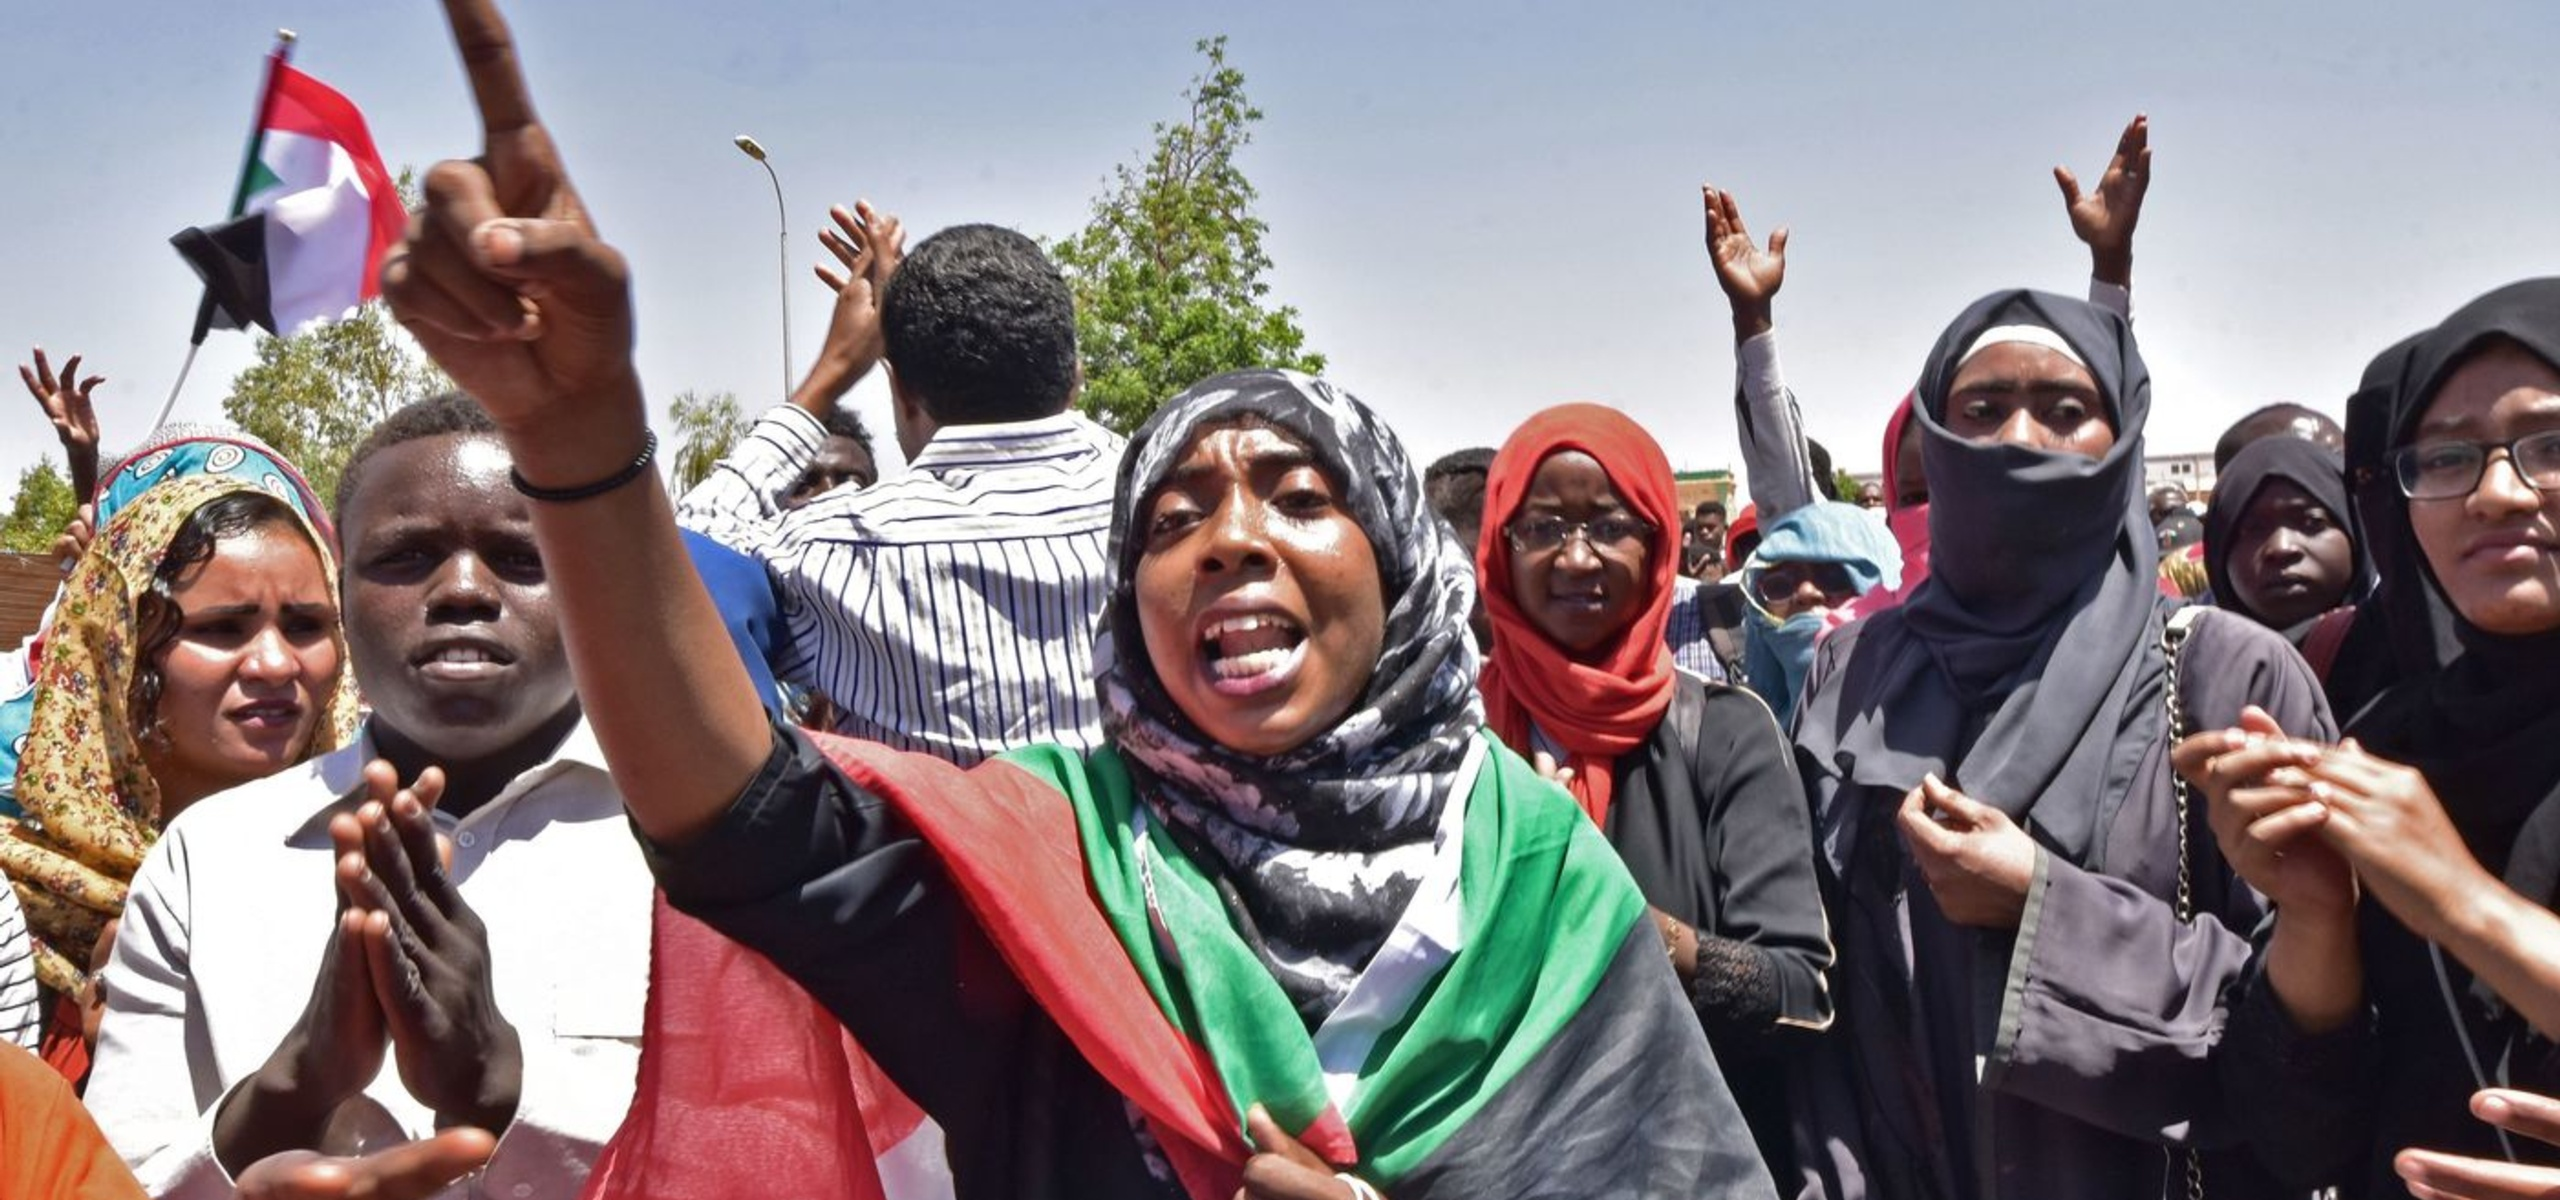 Sudan Has Made Amends. Let's Take It Off the Terrorism List.